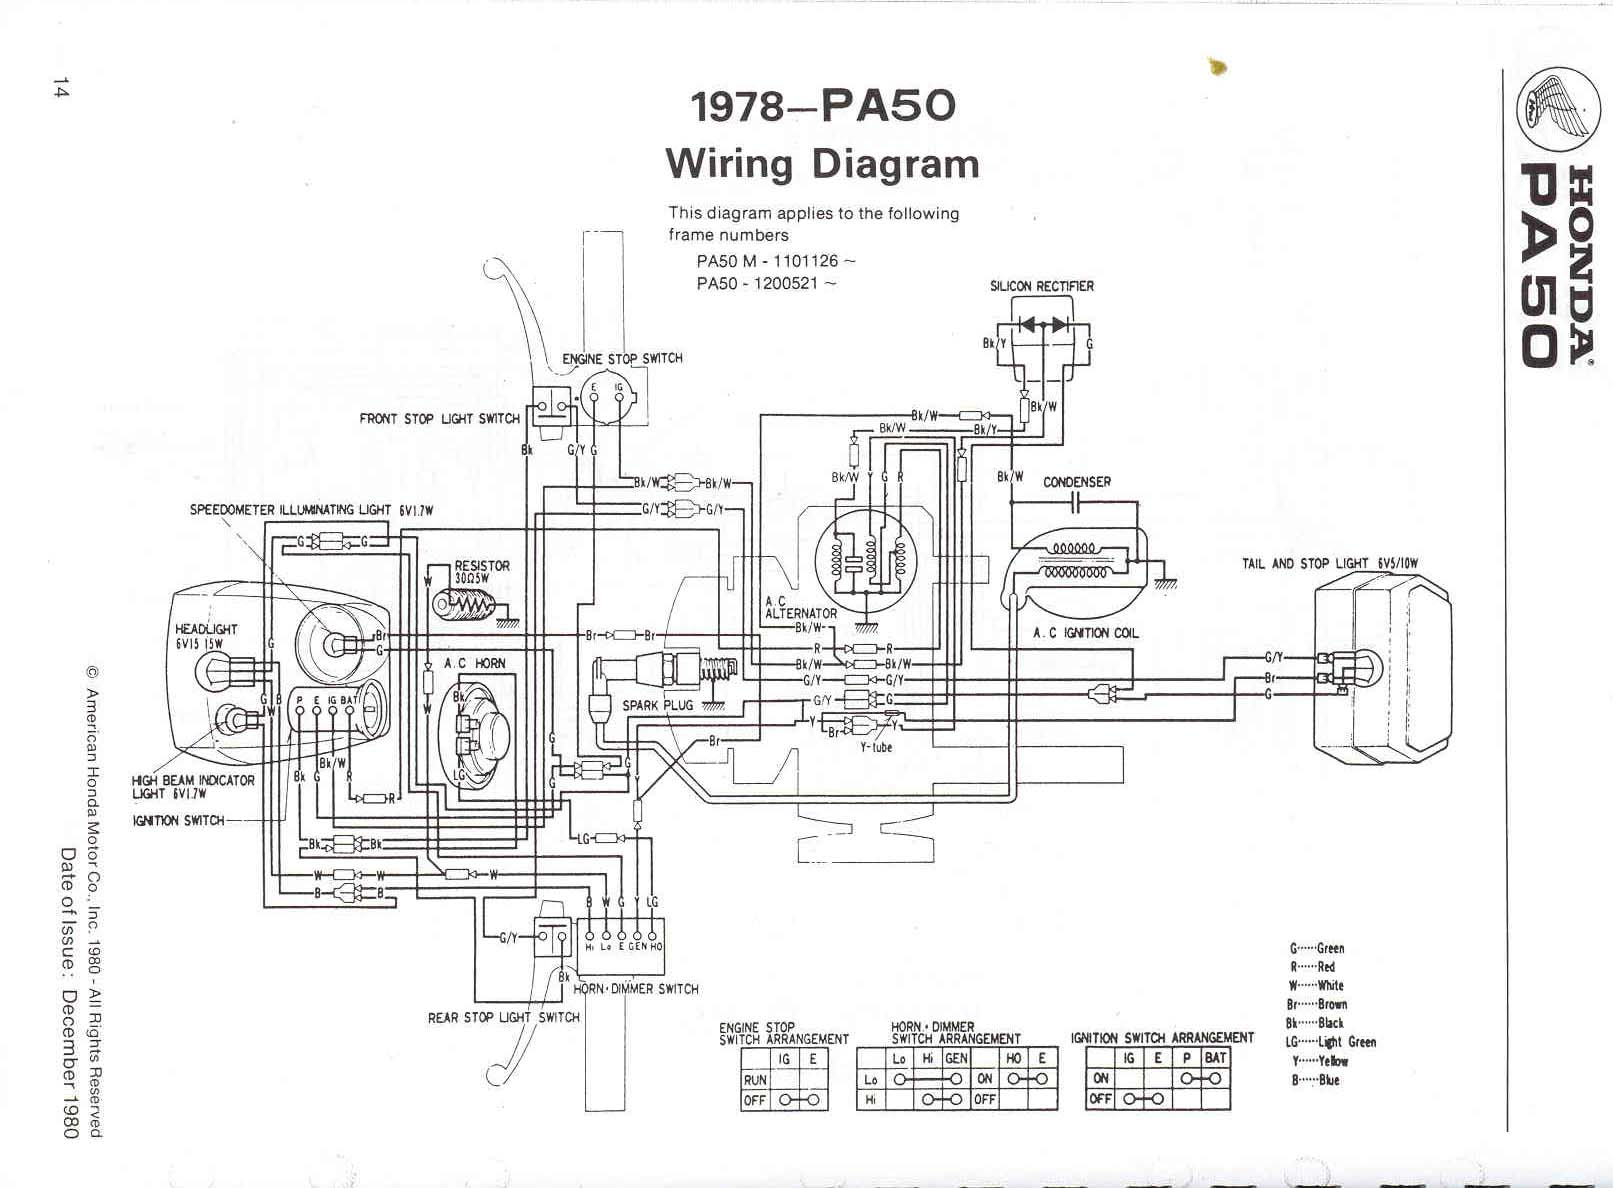 Pa Wiring Diagram Auto Electrical Ford E4od Transmission Re 1980 Honda 50